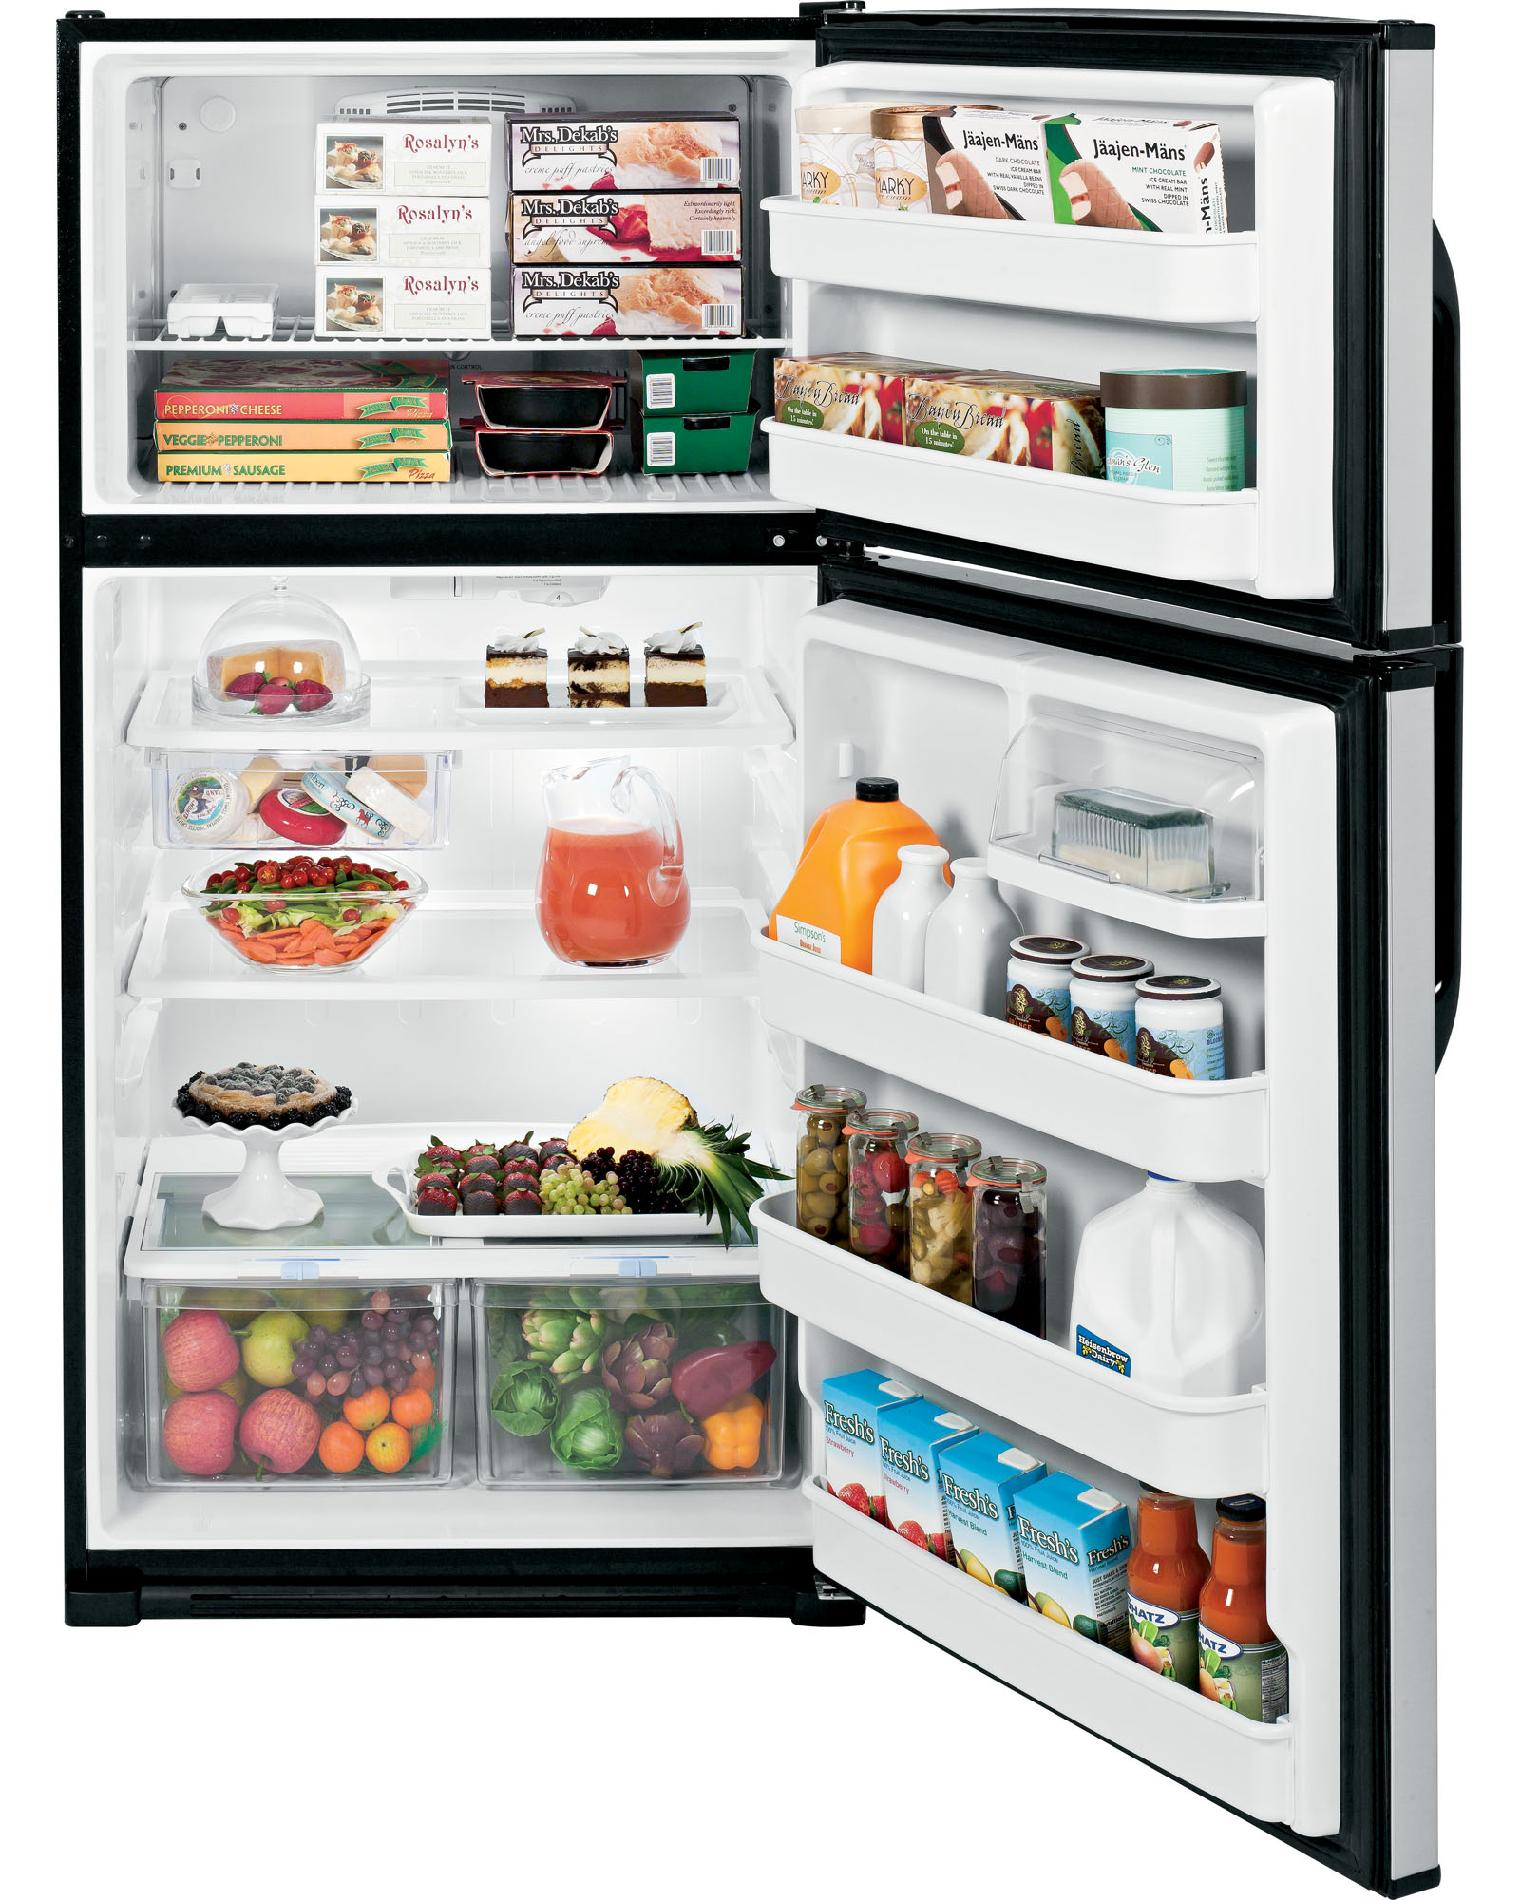 GE 21.0 cu. ft. Top-Freezer Refrigerator - CleanSteel™